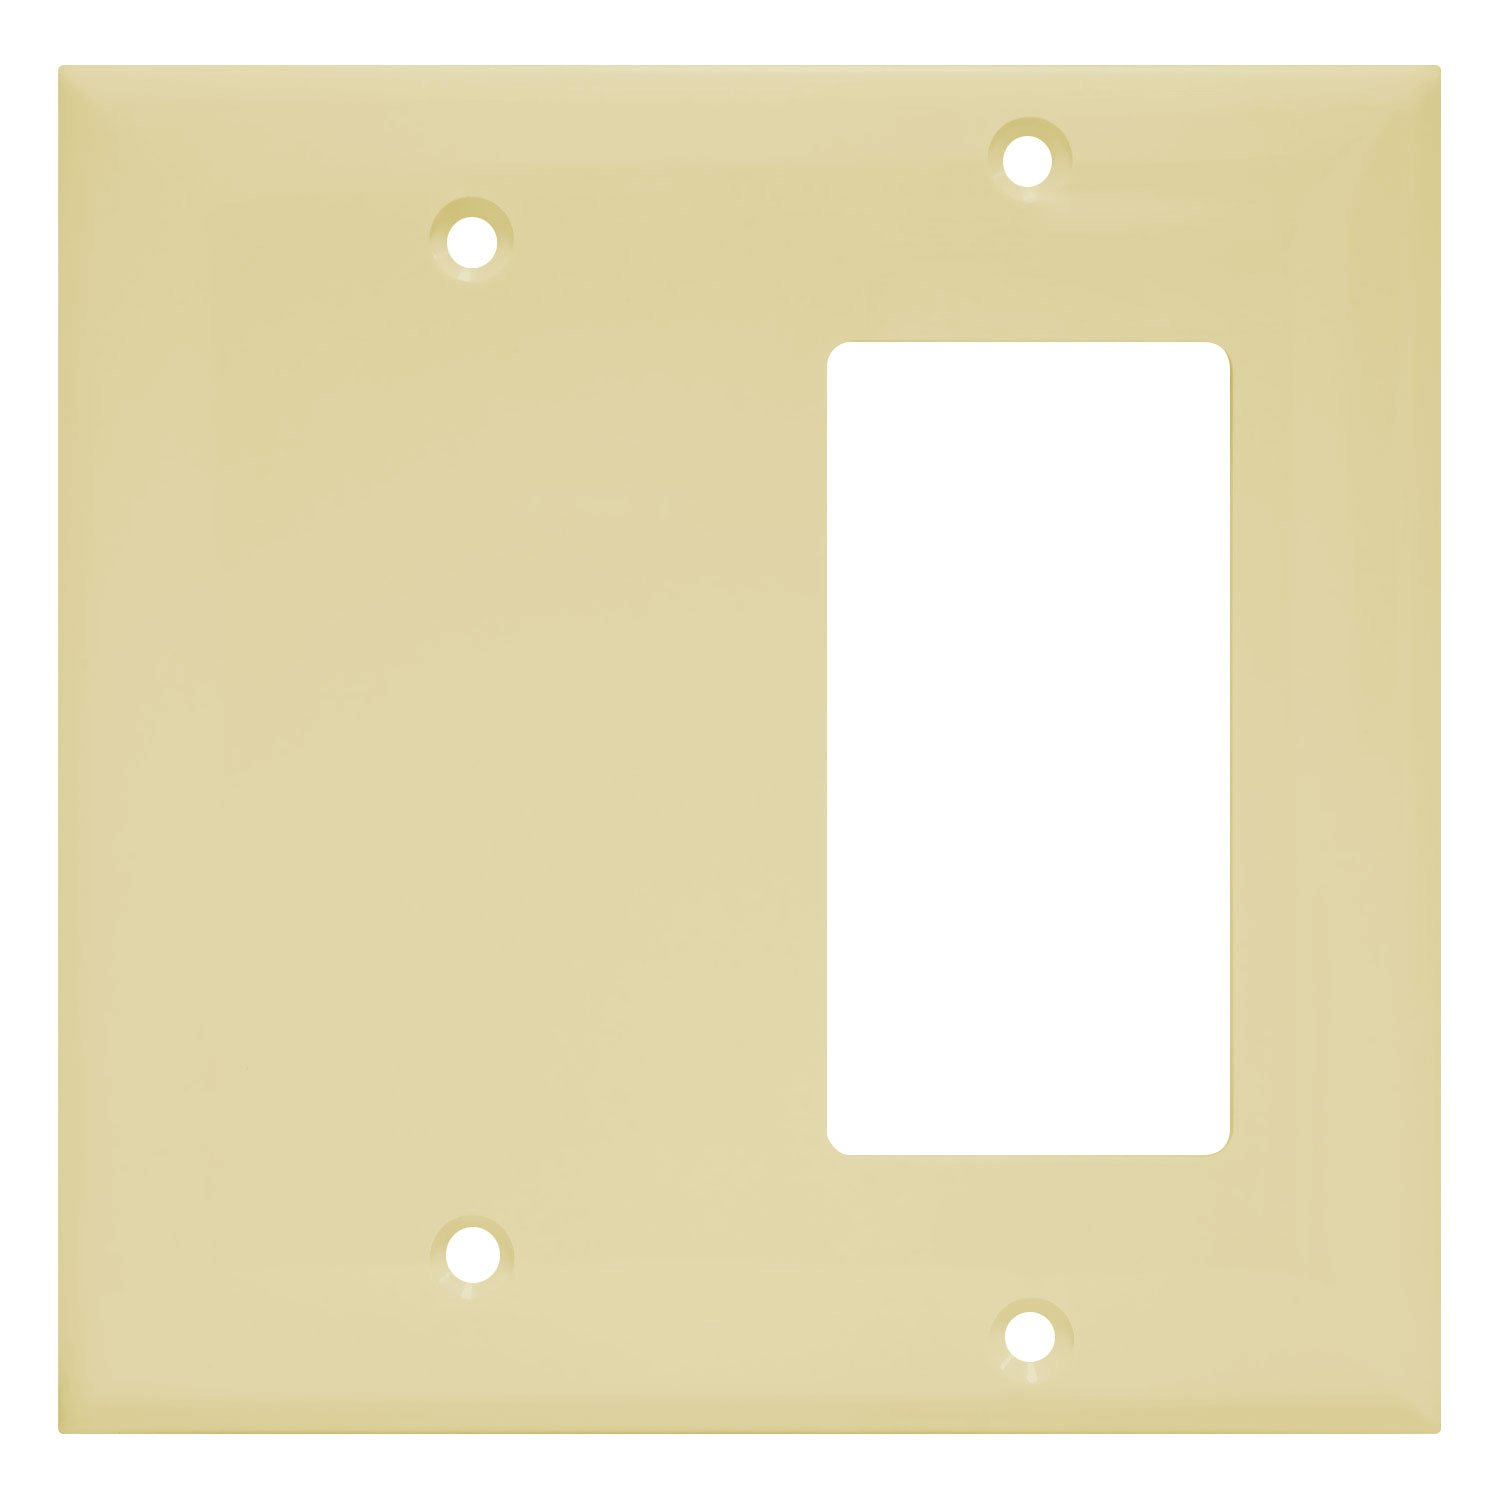 Enerlites 880131 I Decorator/Blank Switch Wall Plate Combination By Home  Decorator Outlet Cover, 2 Gang, Ivory, Standard Size: Amazon.com: Home  Improvement